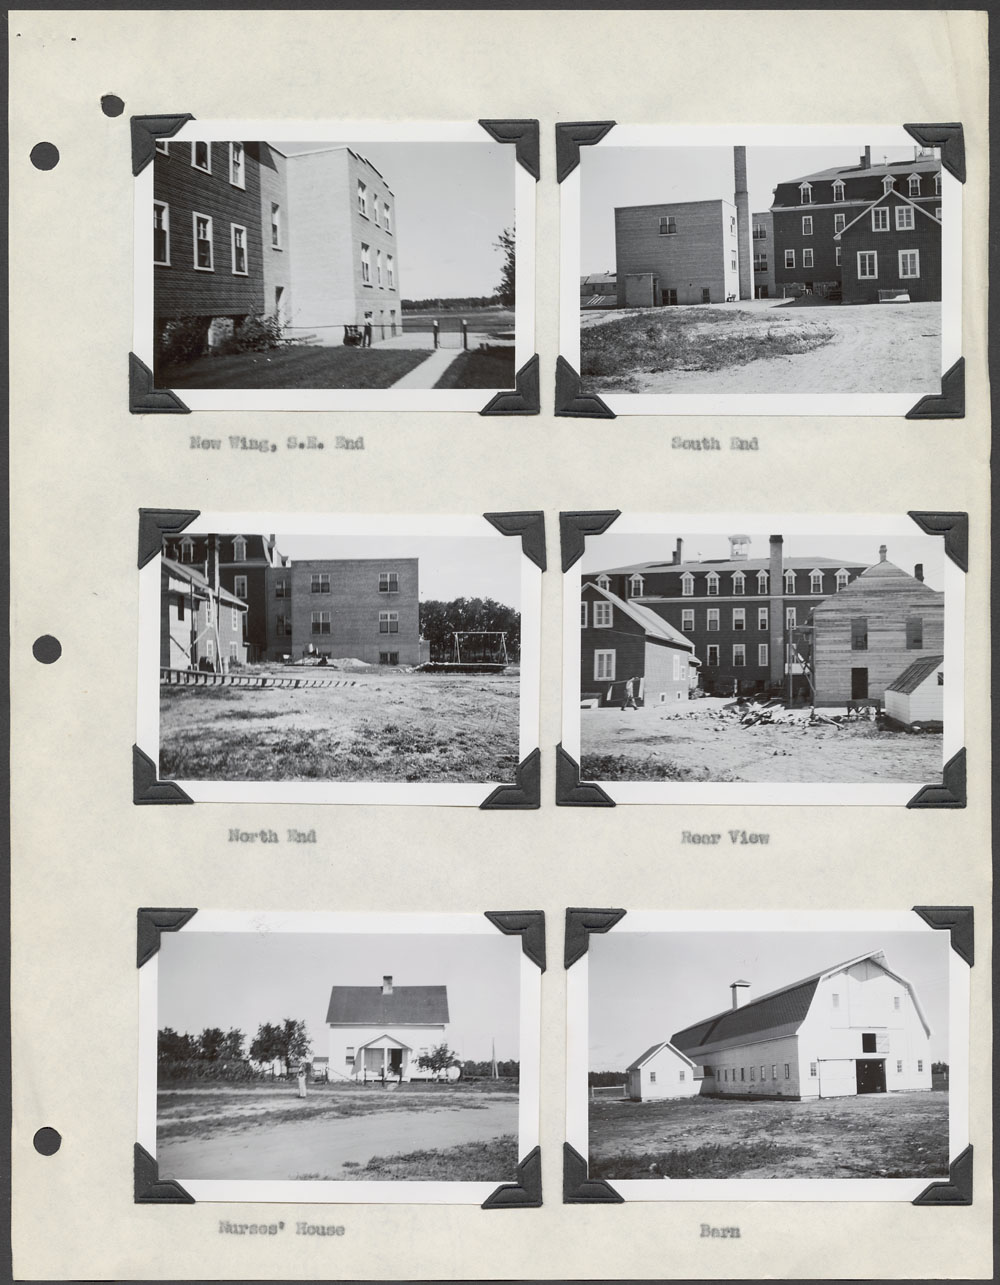 Sandy Bay Indian Residential School, views of the school, the nurses' residence and the barn, Marius, ca. 1948